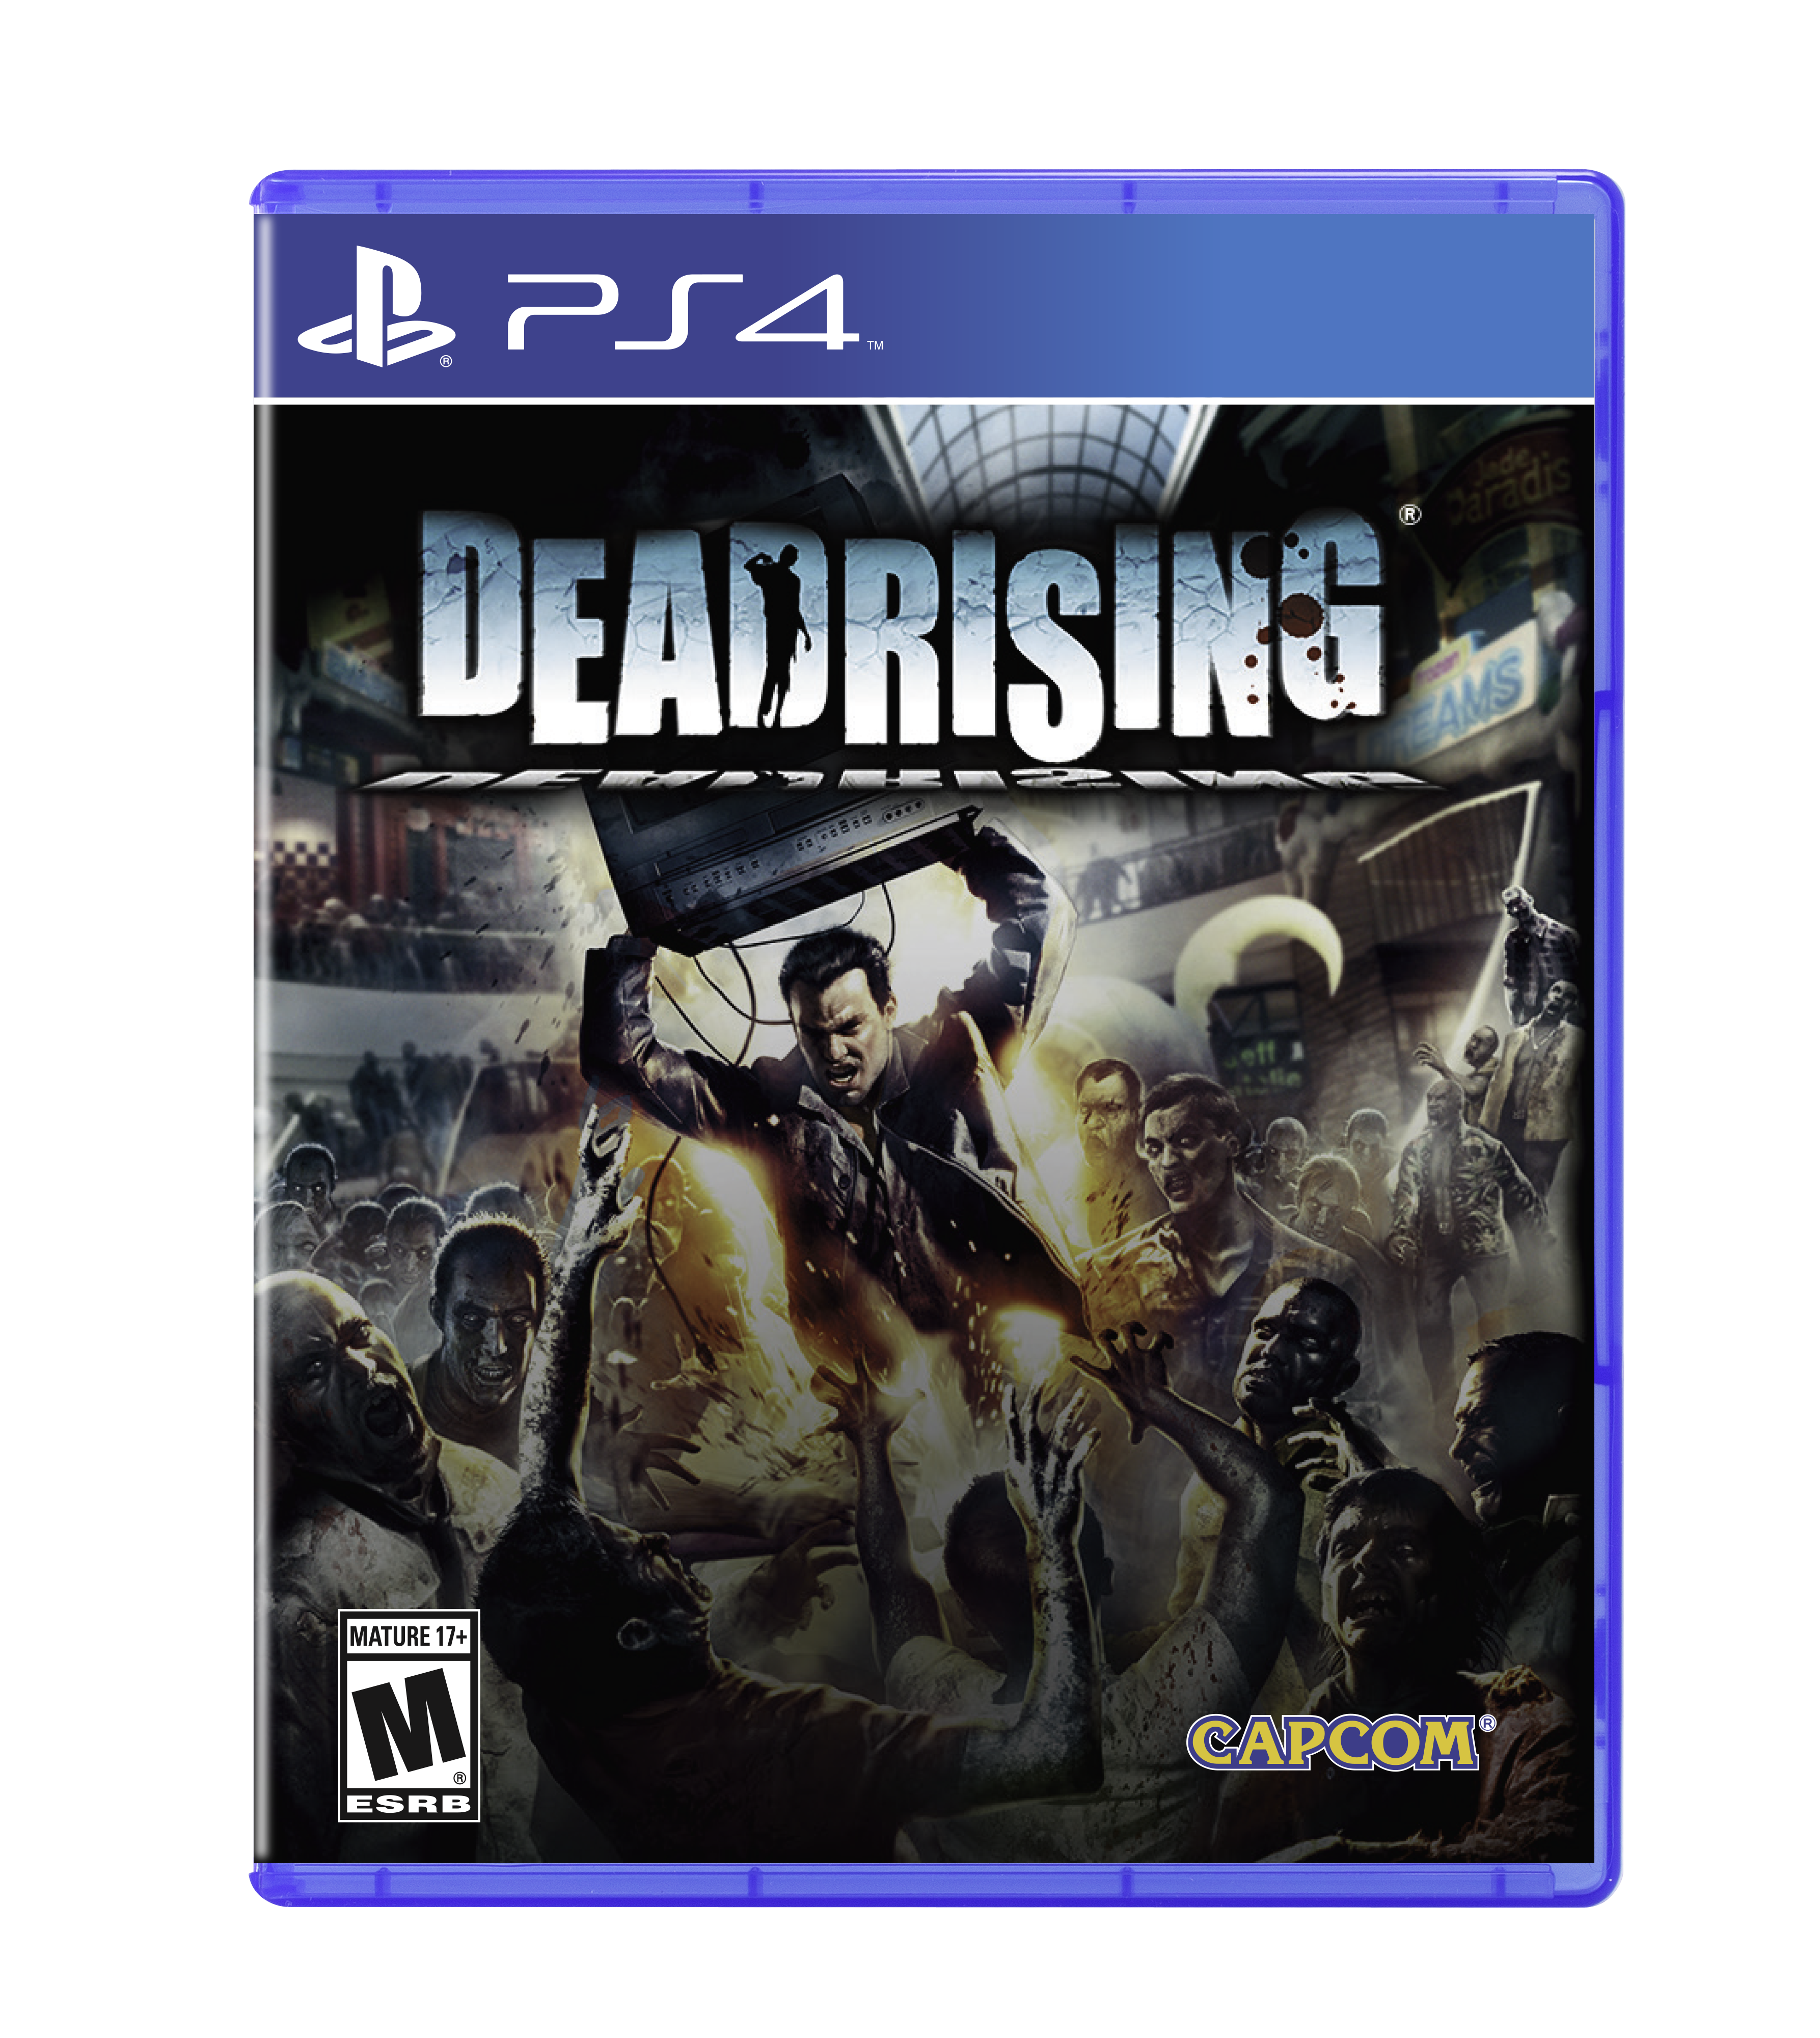 Dead rising 4 title png. The classic series returns